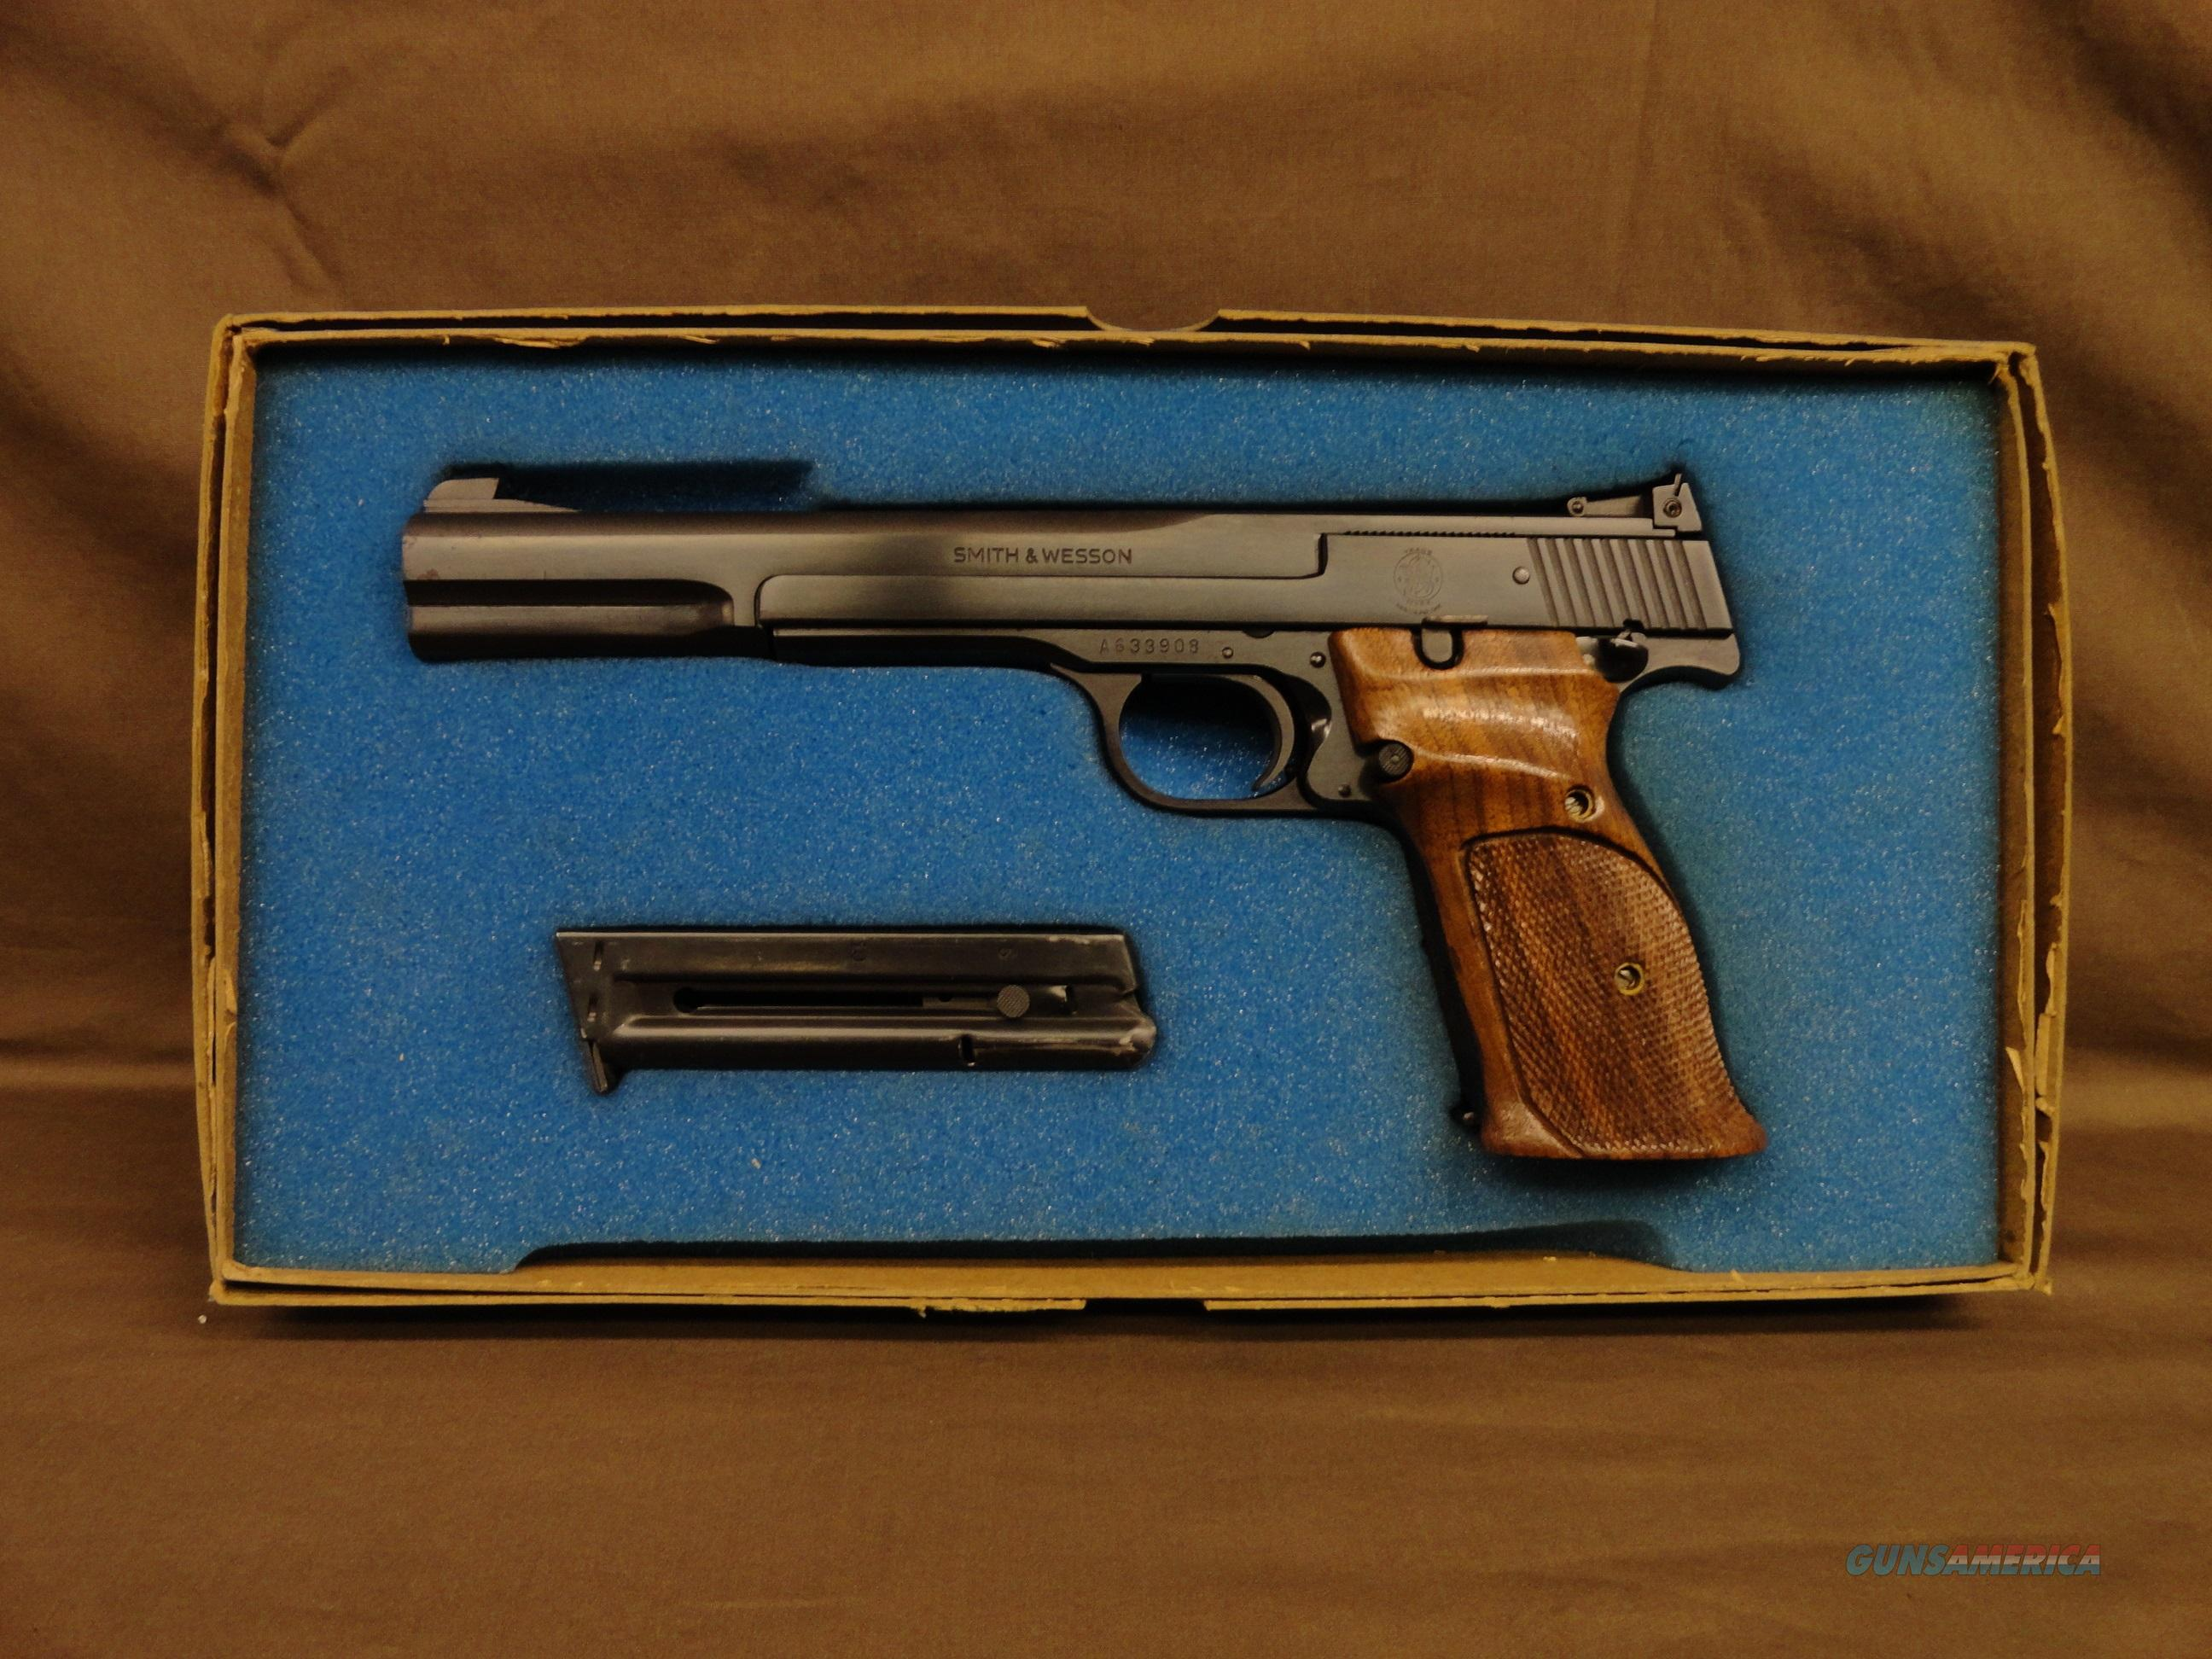 Smith & Wesson Model 41 .22lr Late 70s' 3rd Edition - Rare estate find!  Guns > Pistols > Smith & Wesson Pistols - Autos > .22 Autos